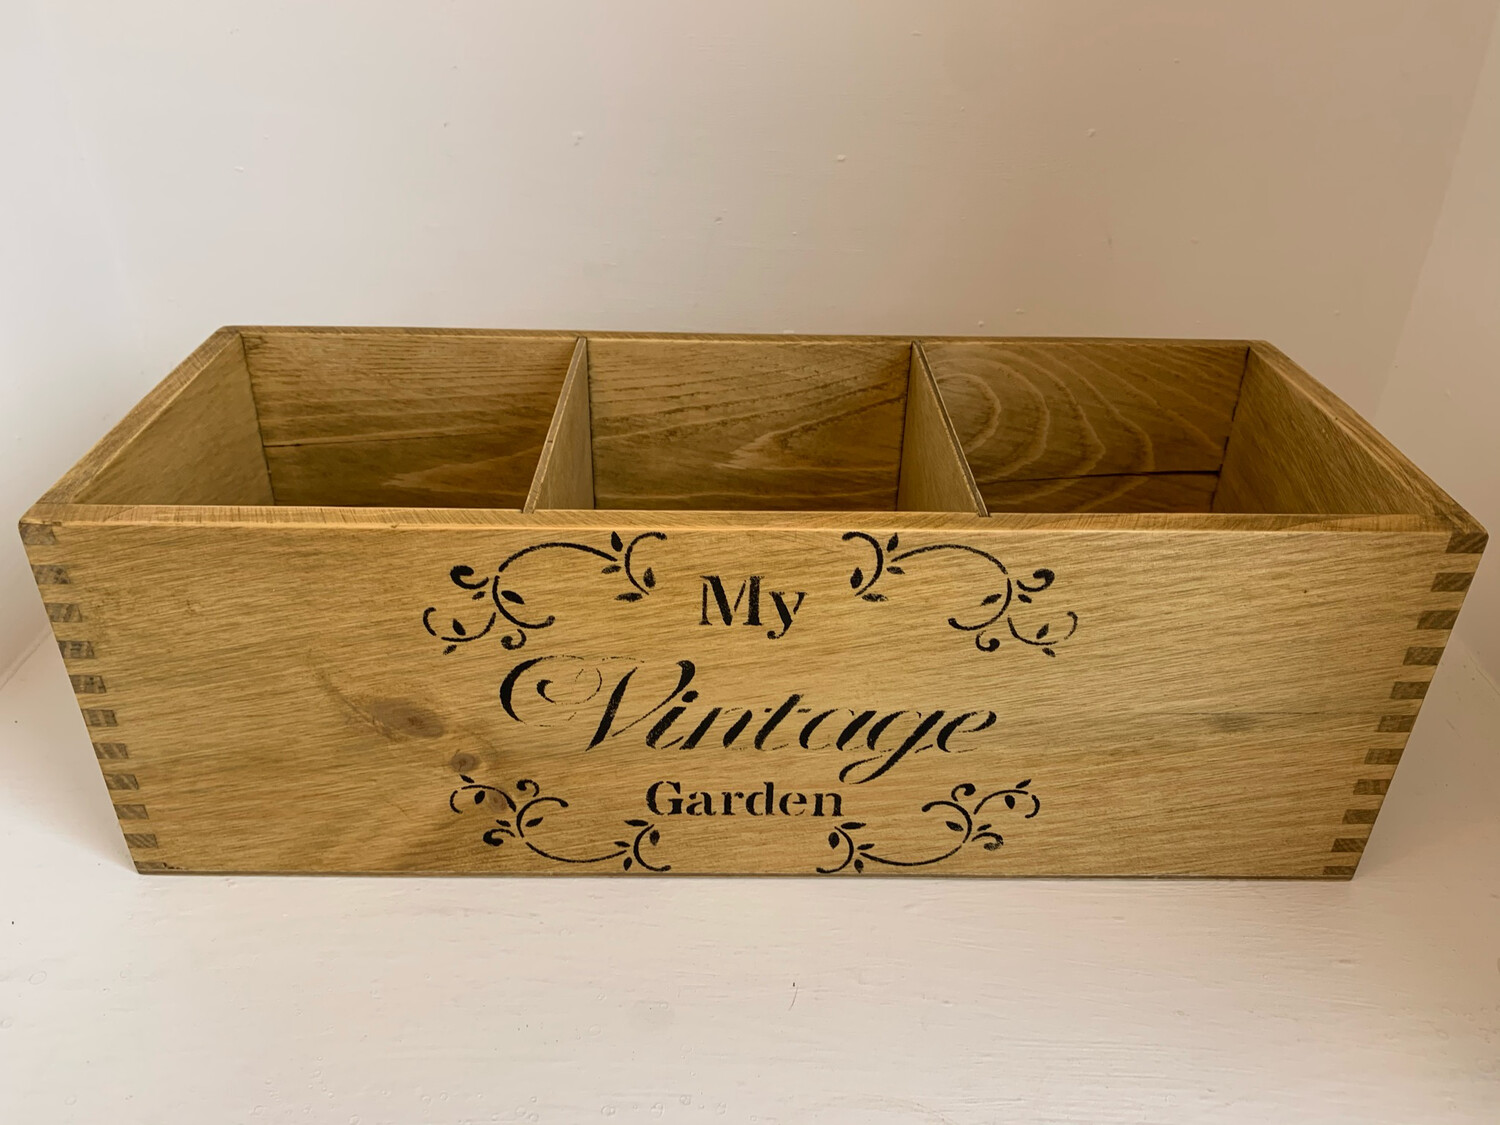 """My Vintage garden"" Fresh Herb flower planter display window box personalised gift decorative shabby chic wooden box"